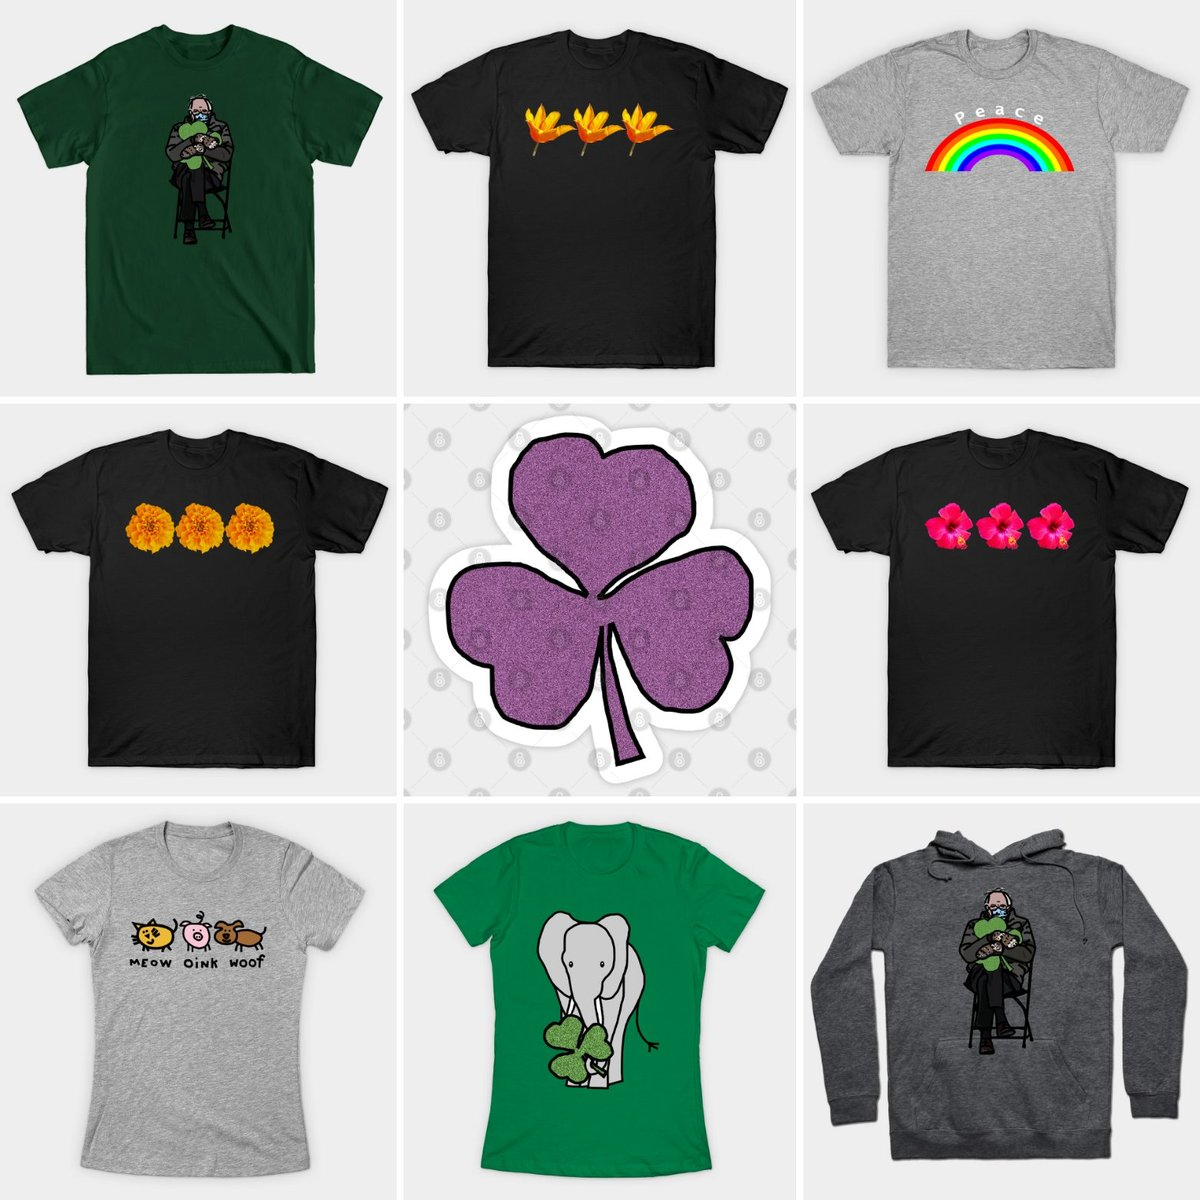 #SOLD these #tshirts #hoodie  and #sticker from @TeePublic yesterday. #thankyou #USA buyers Find these designs and more here  #ellenhenryart #TeePublic #ChristmasCountdown #digitalart #BernieSanders #StPatricksDay #florals #rainbows